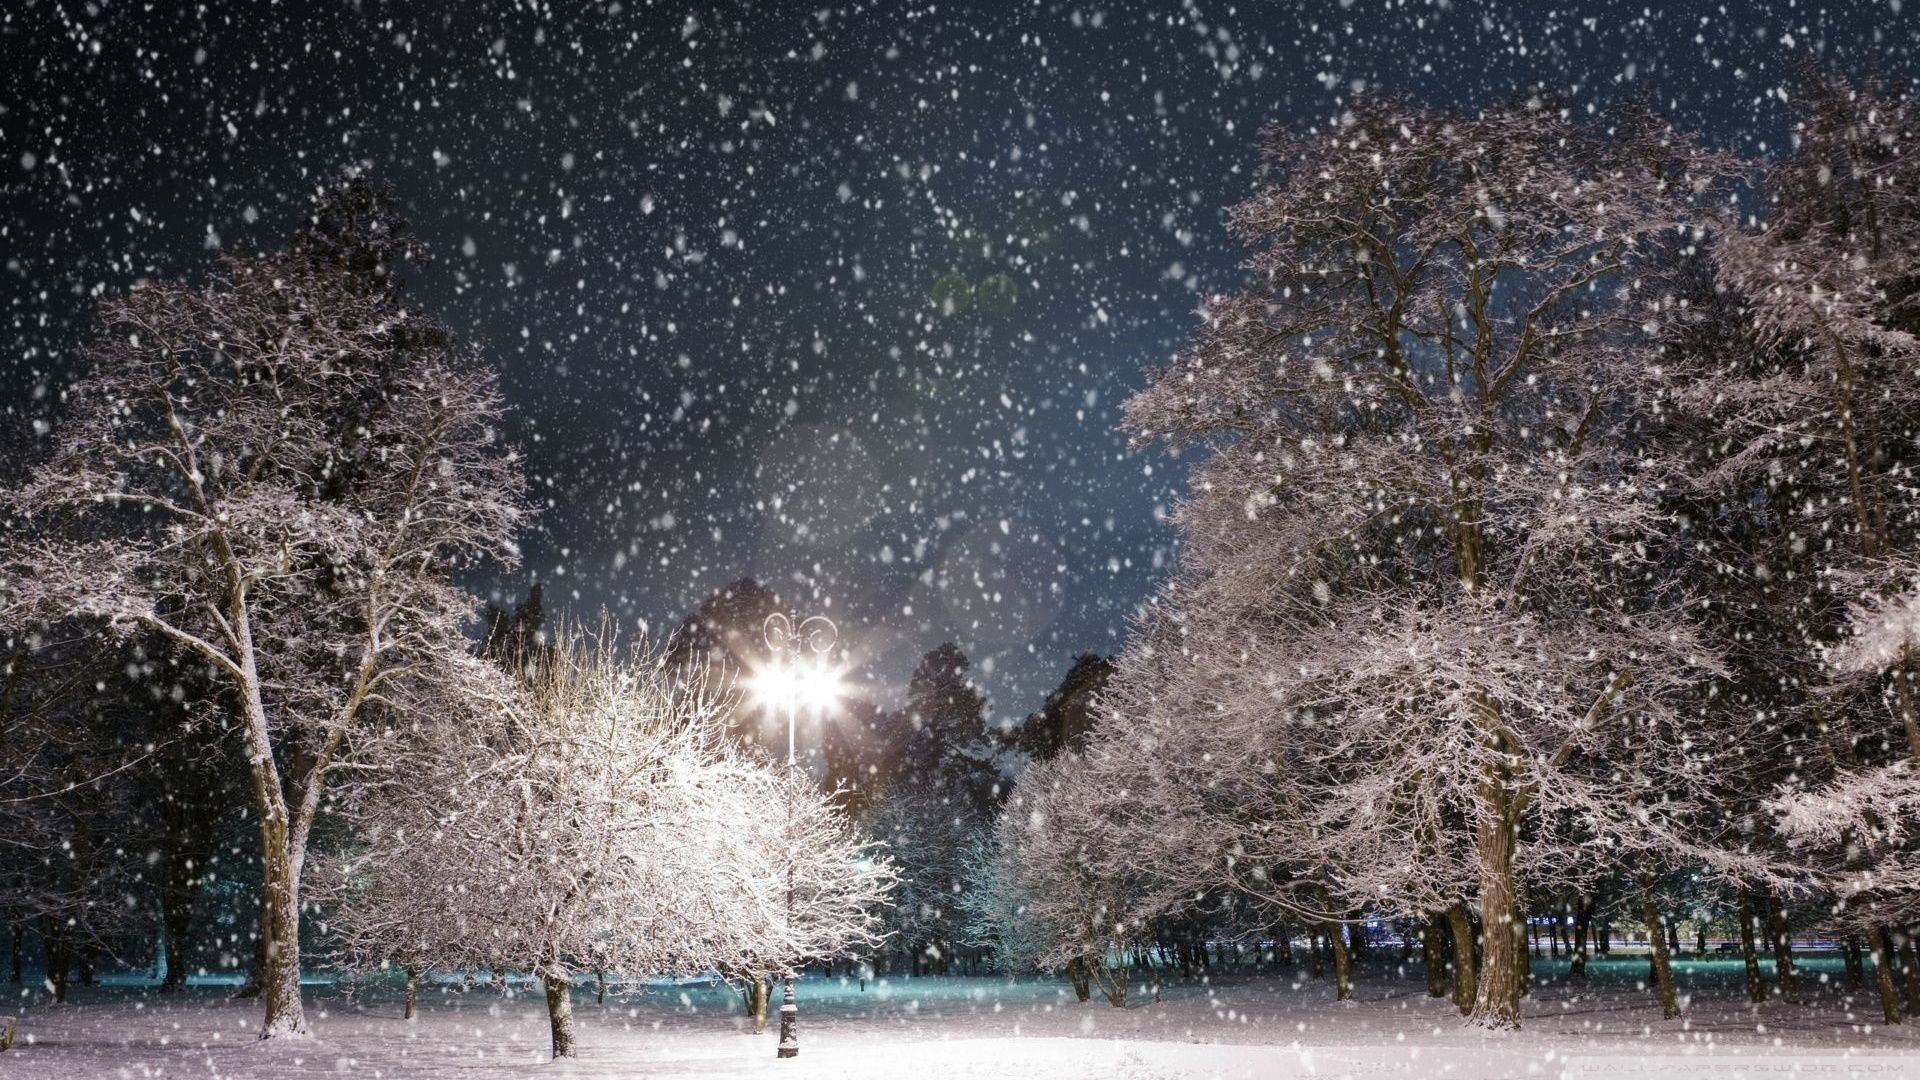 Night Snow Wallpapers Top Free Night Snow Backgrounds